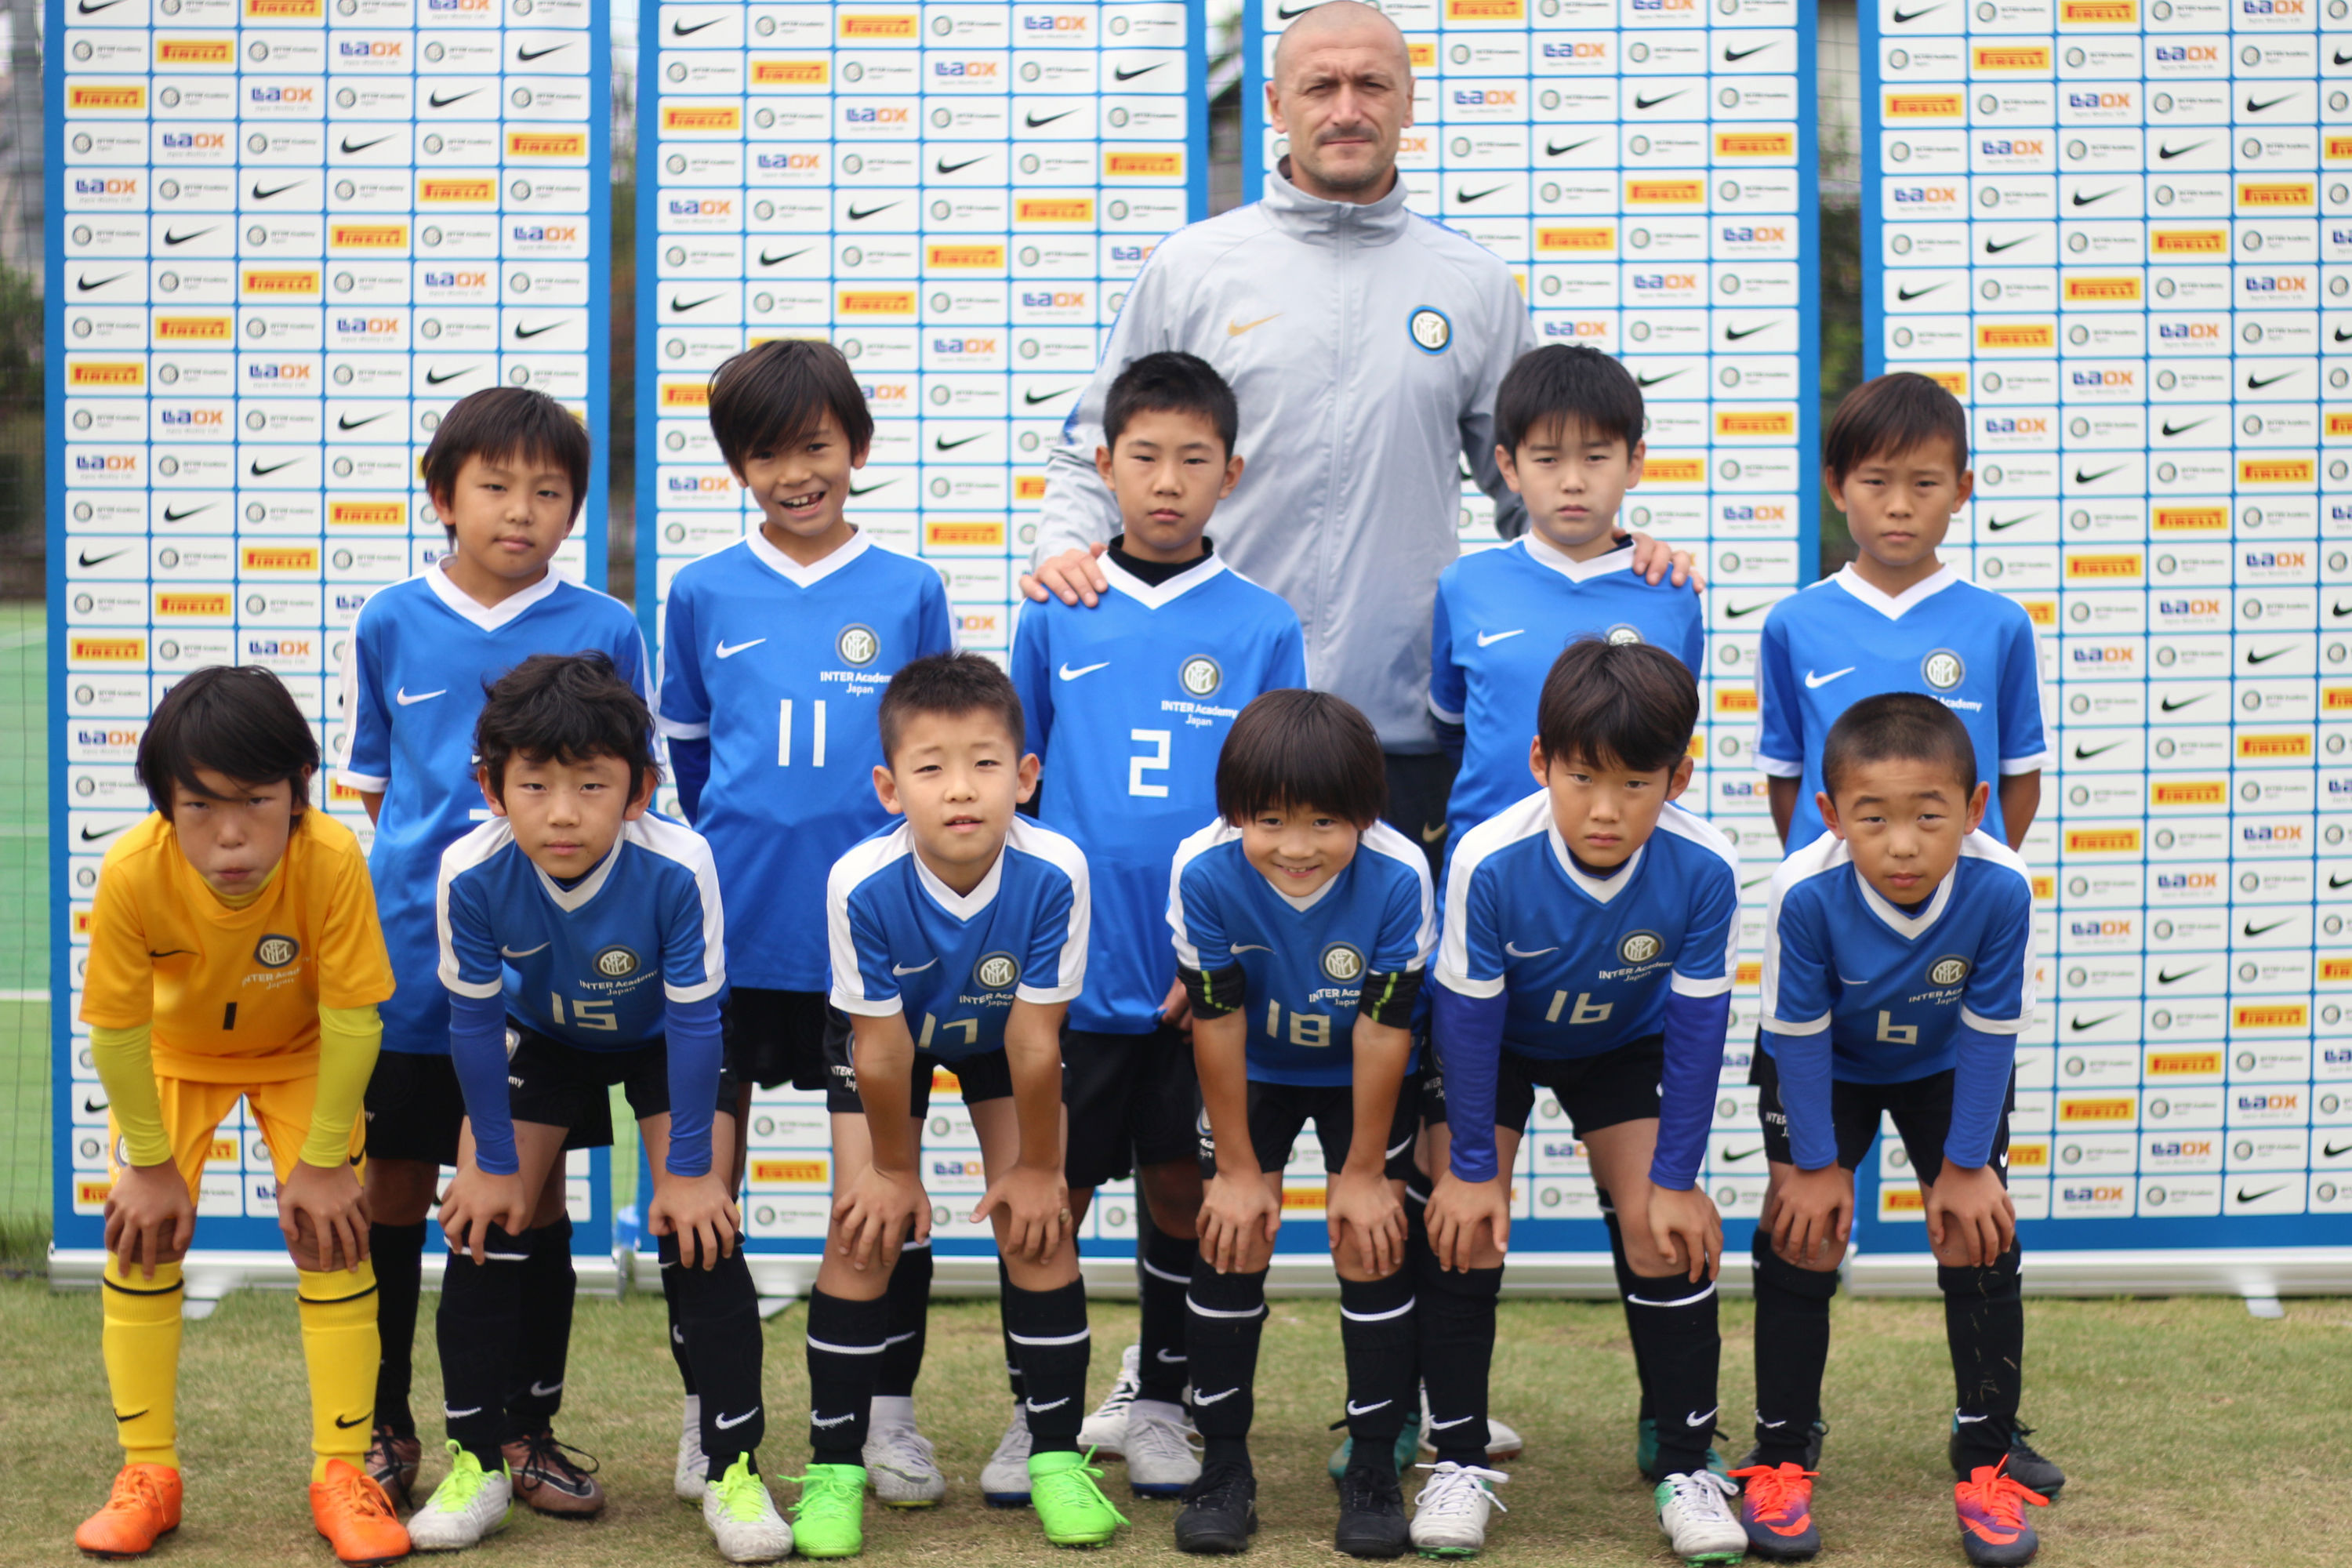 First edition of the Inter Academy Cup Japan in Fuchu